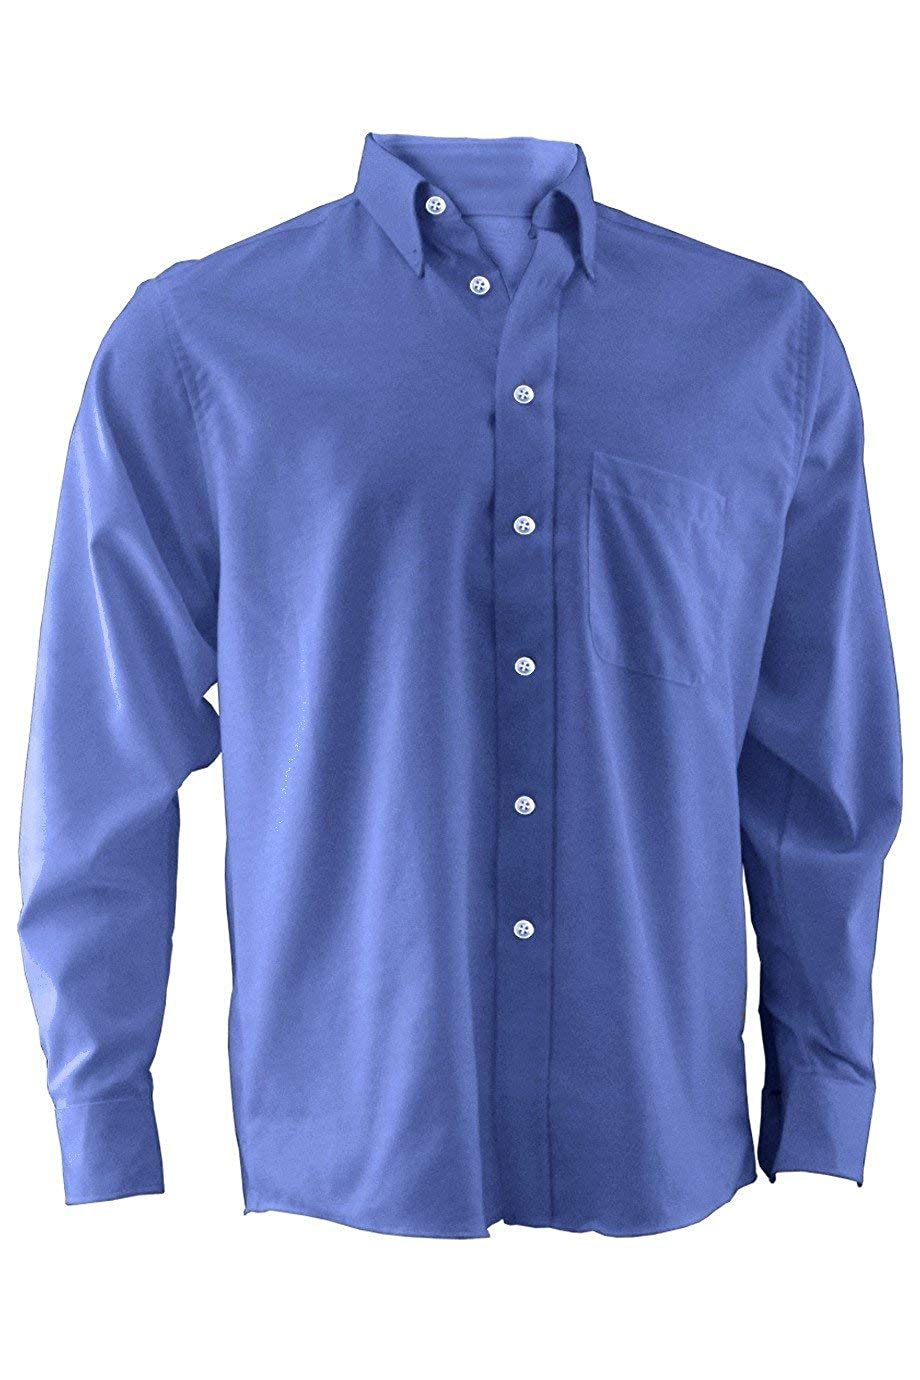 Mens Button Down Long Sleeve Quality Oxford Shirt